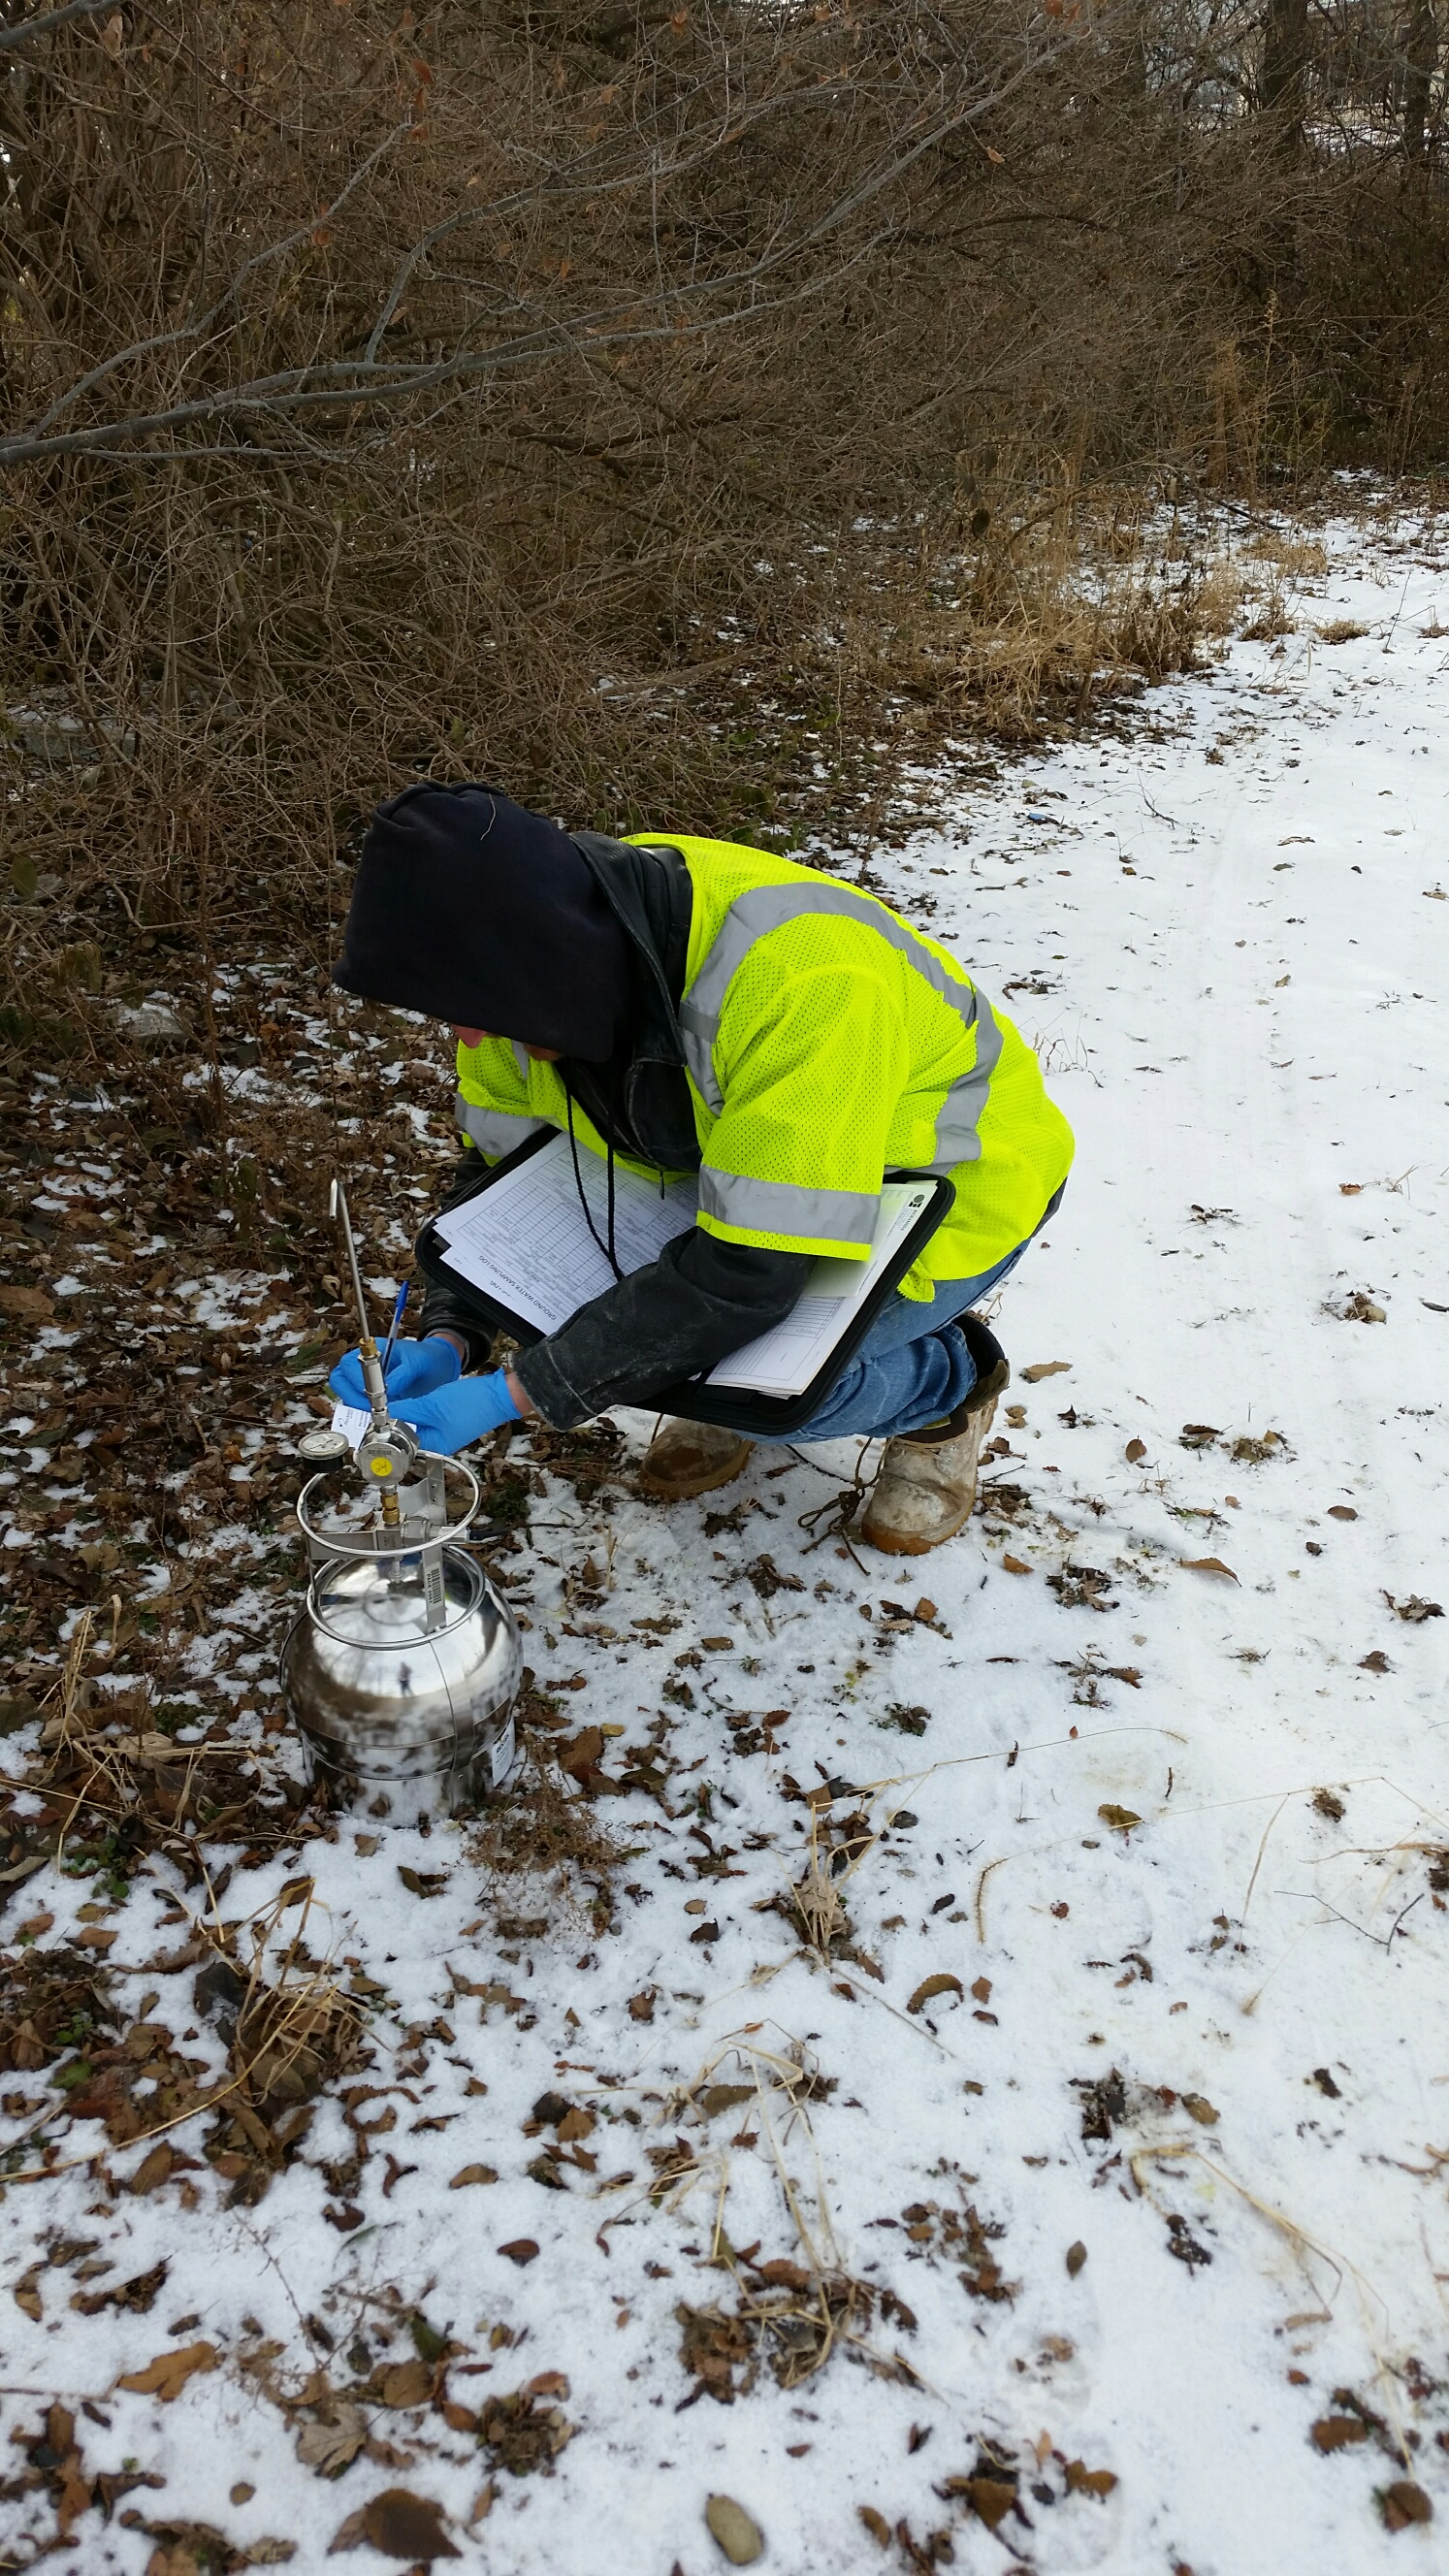 KERAMIDA staff geologist collecting an outdoor air sample using a Summa canister.